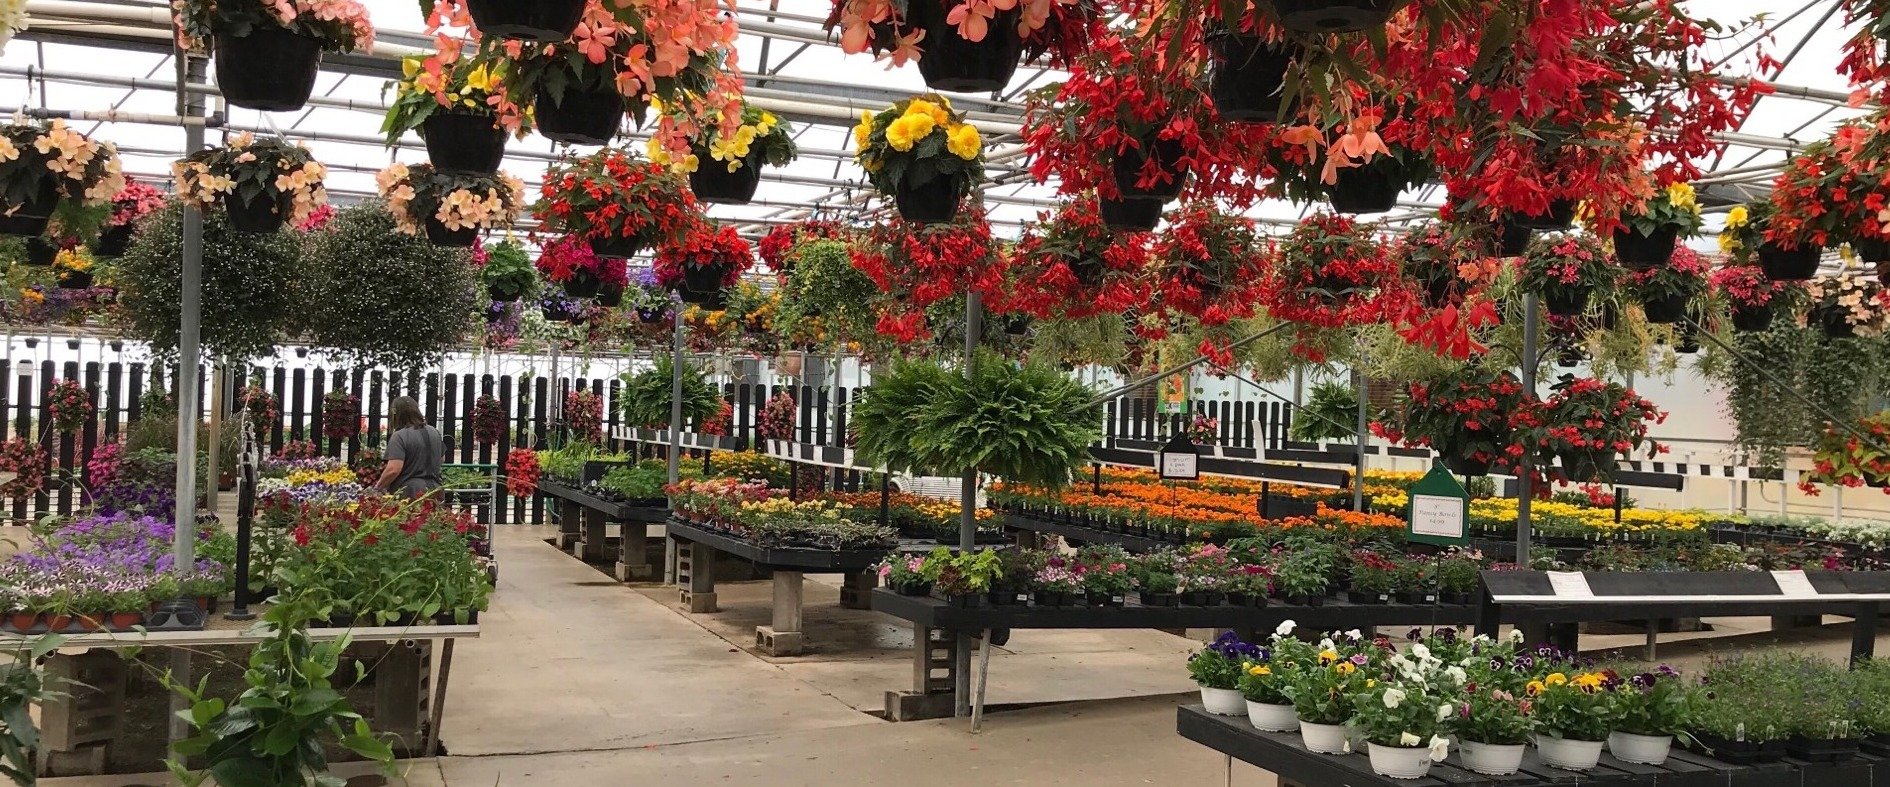 K Drive Greenhouse: East Leroy, MI: Flowers, Trees, Shrubs, Plants ...